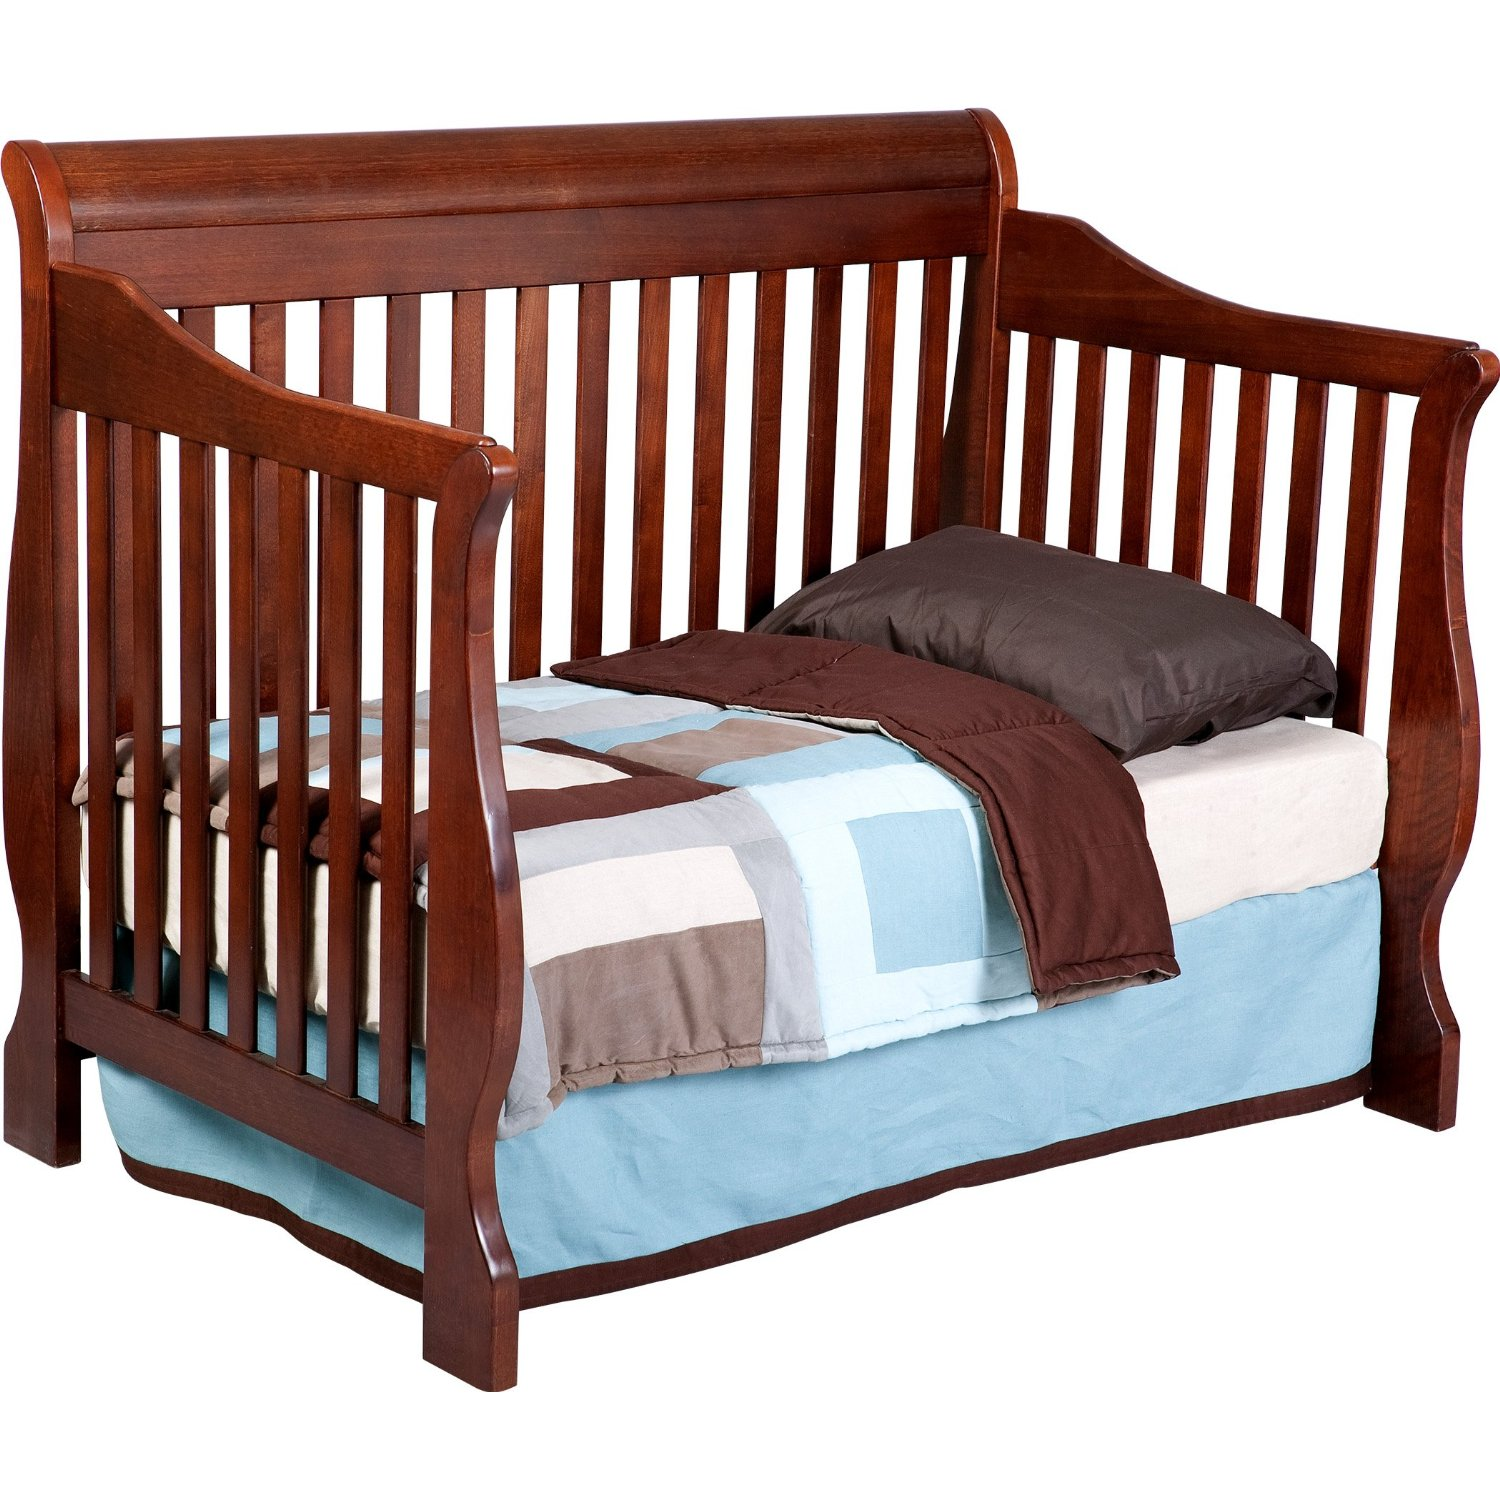 3 in 1 baby crib plans modern baby crib sets for Baby furniture